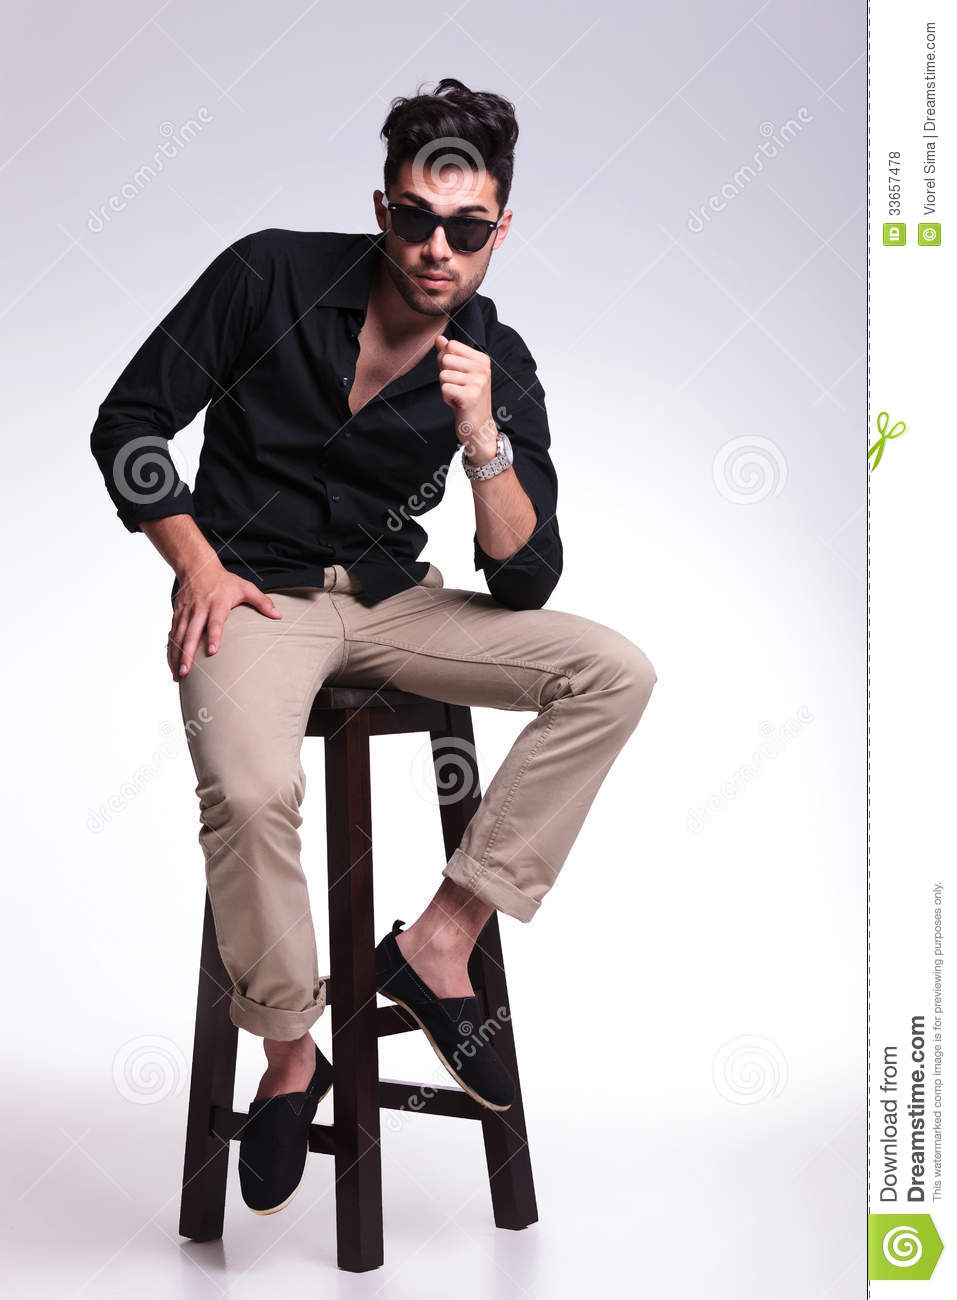 Young Man Posing On A High Chair Royalty Free Stock Photos